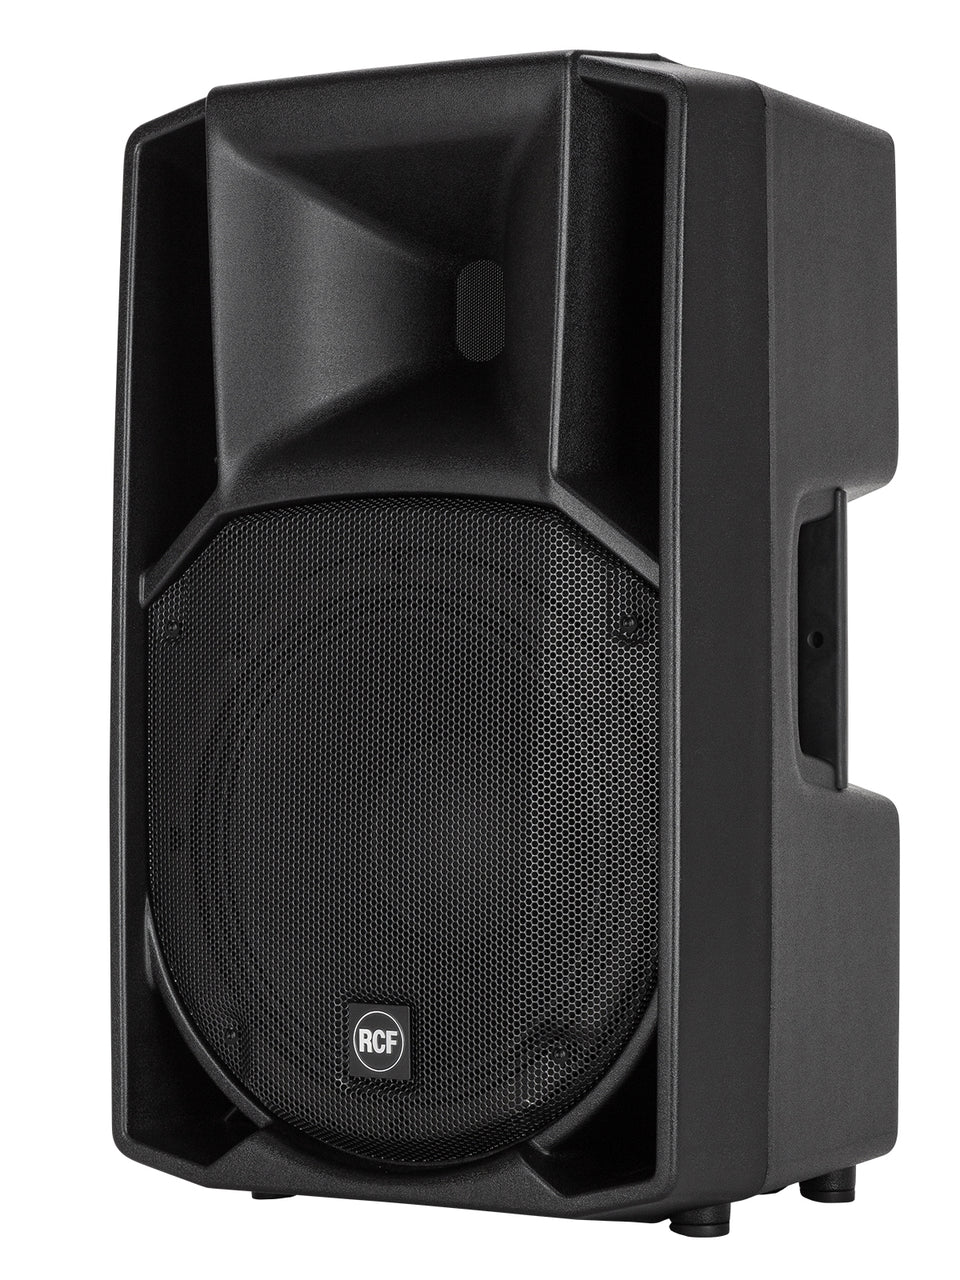 RCF ART 732-A MK4 Active Two Way Speaker